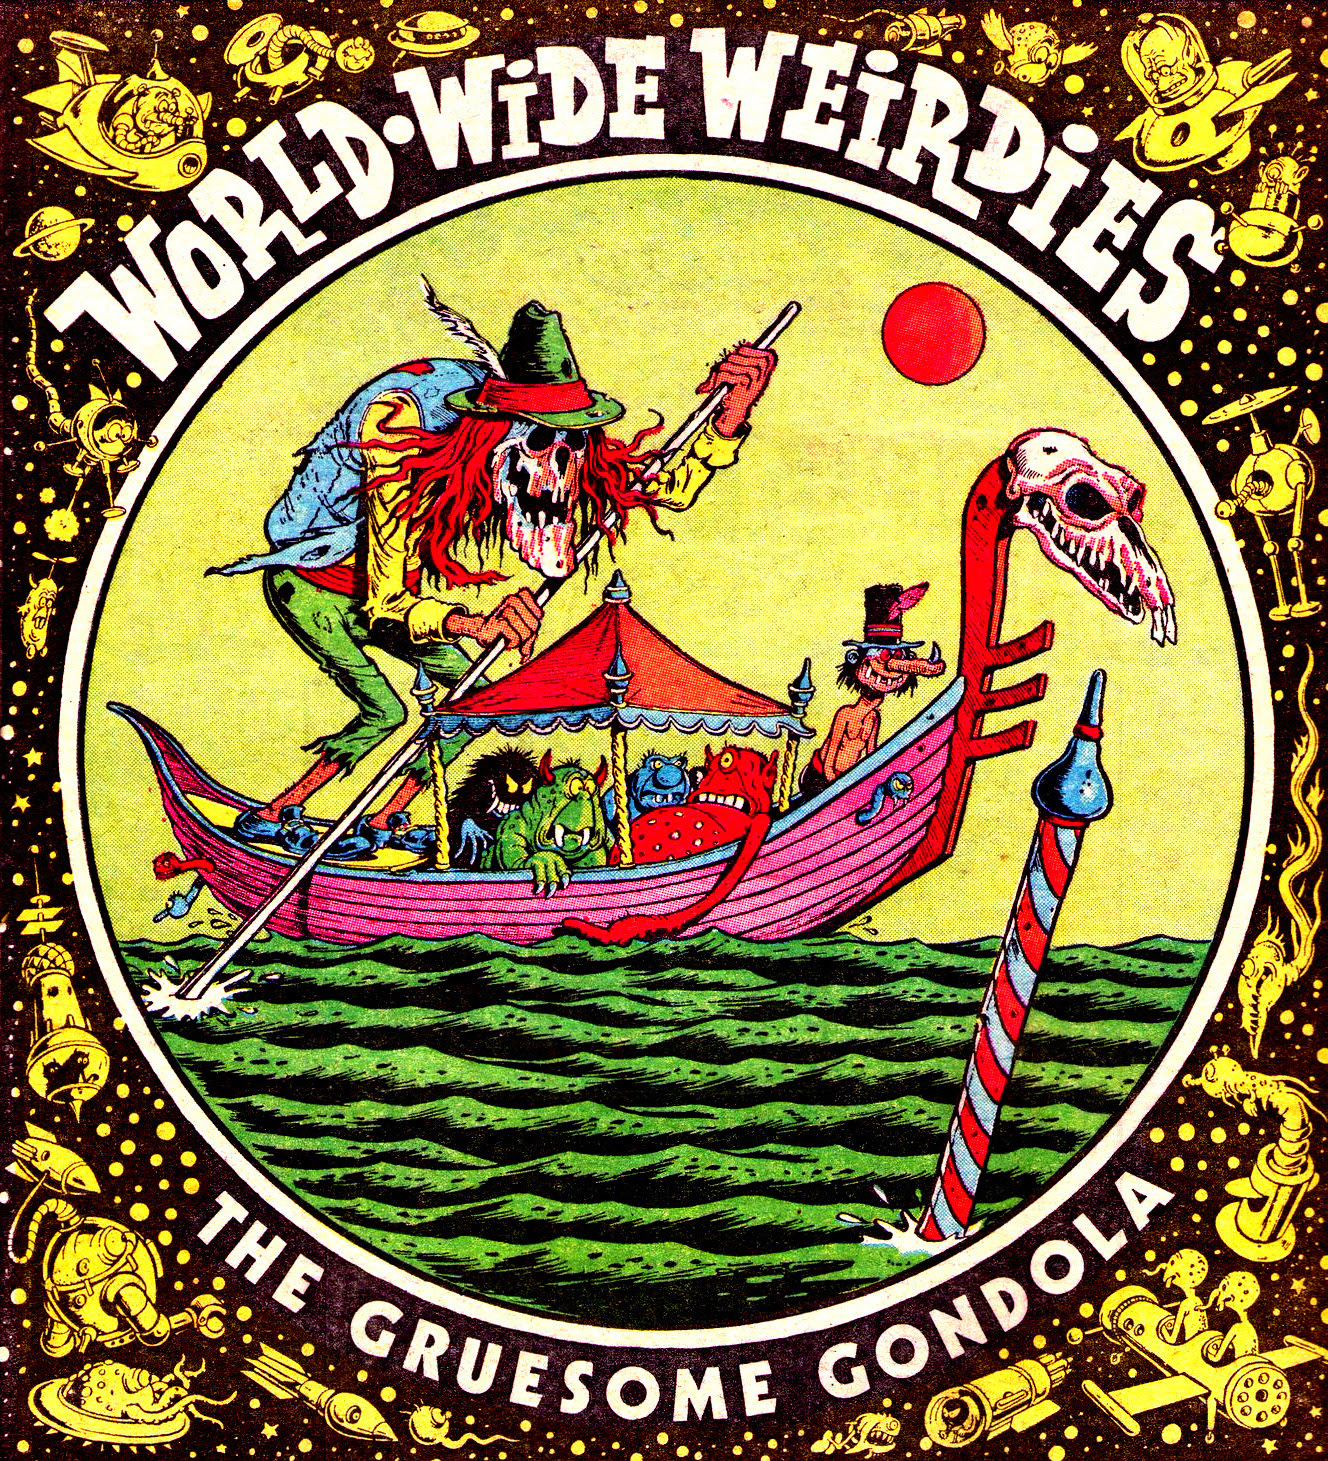 Ken Reid - World Wide Weirdies 30